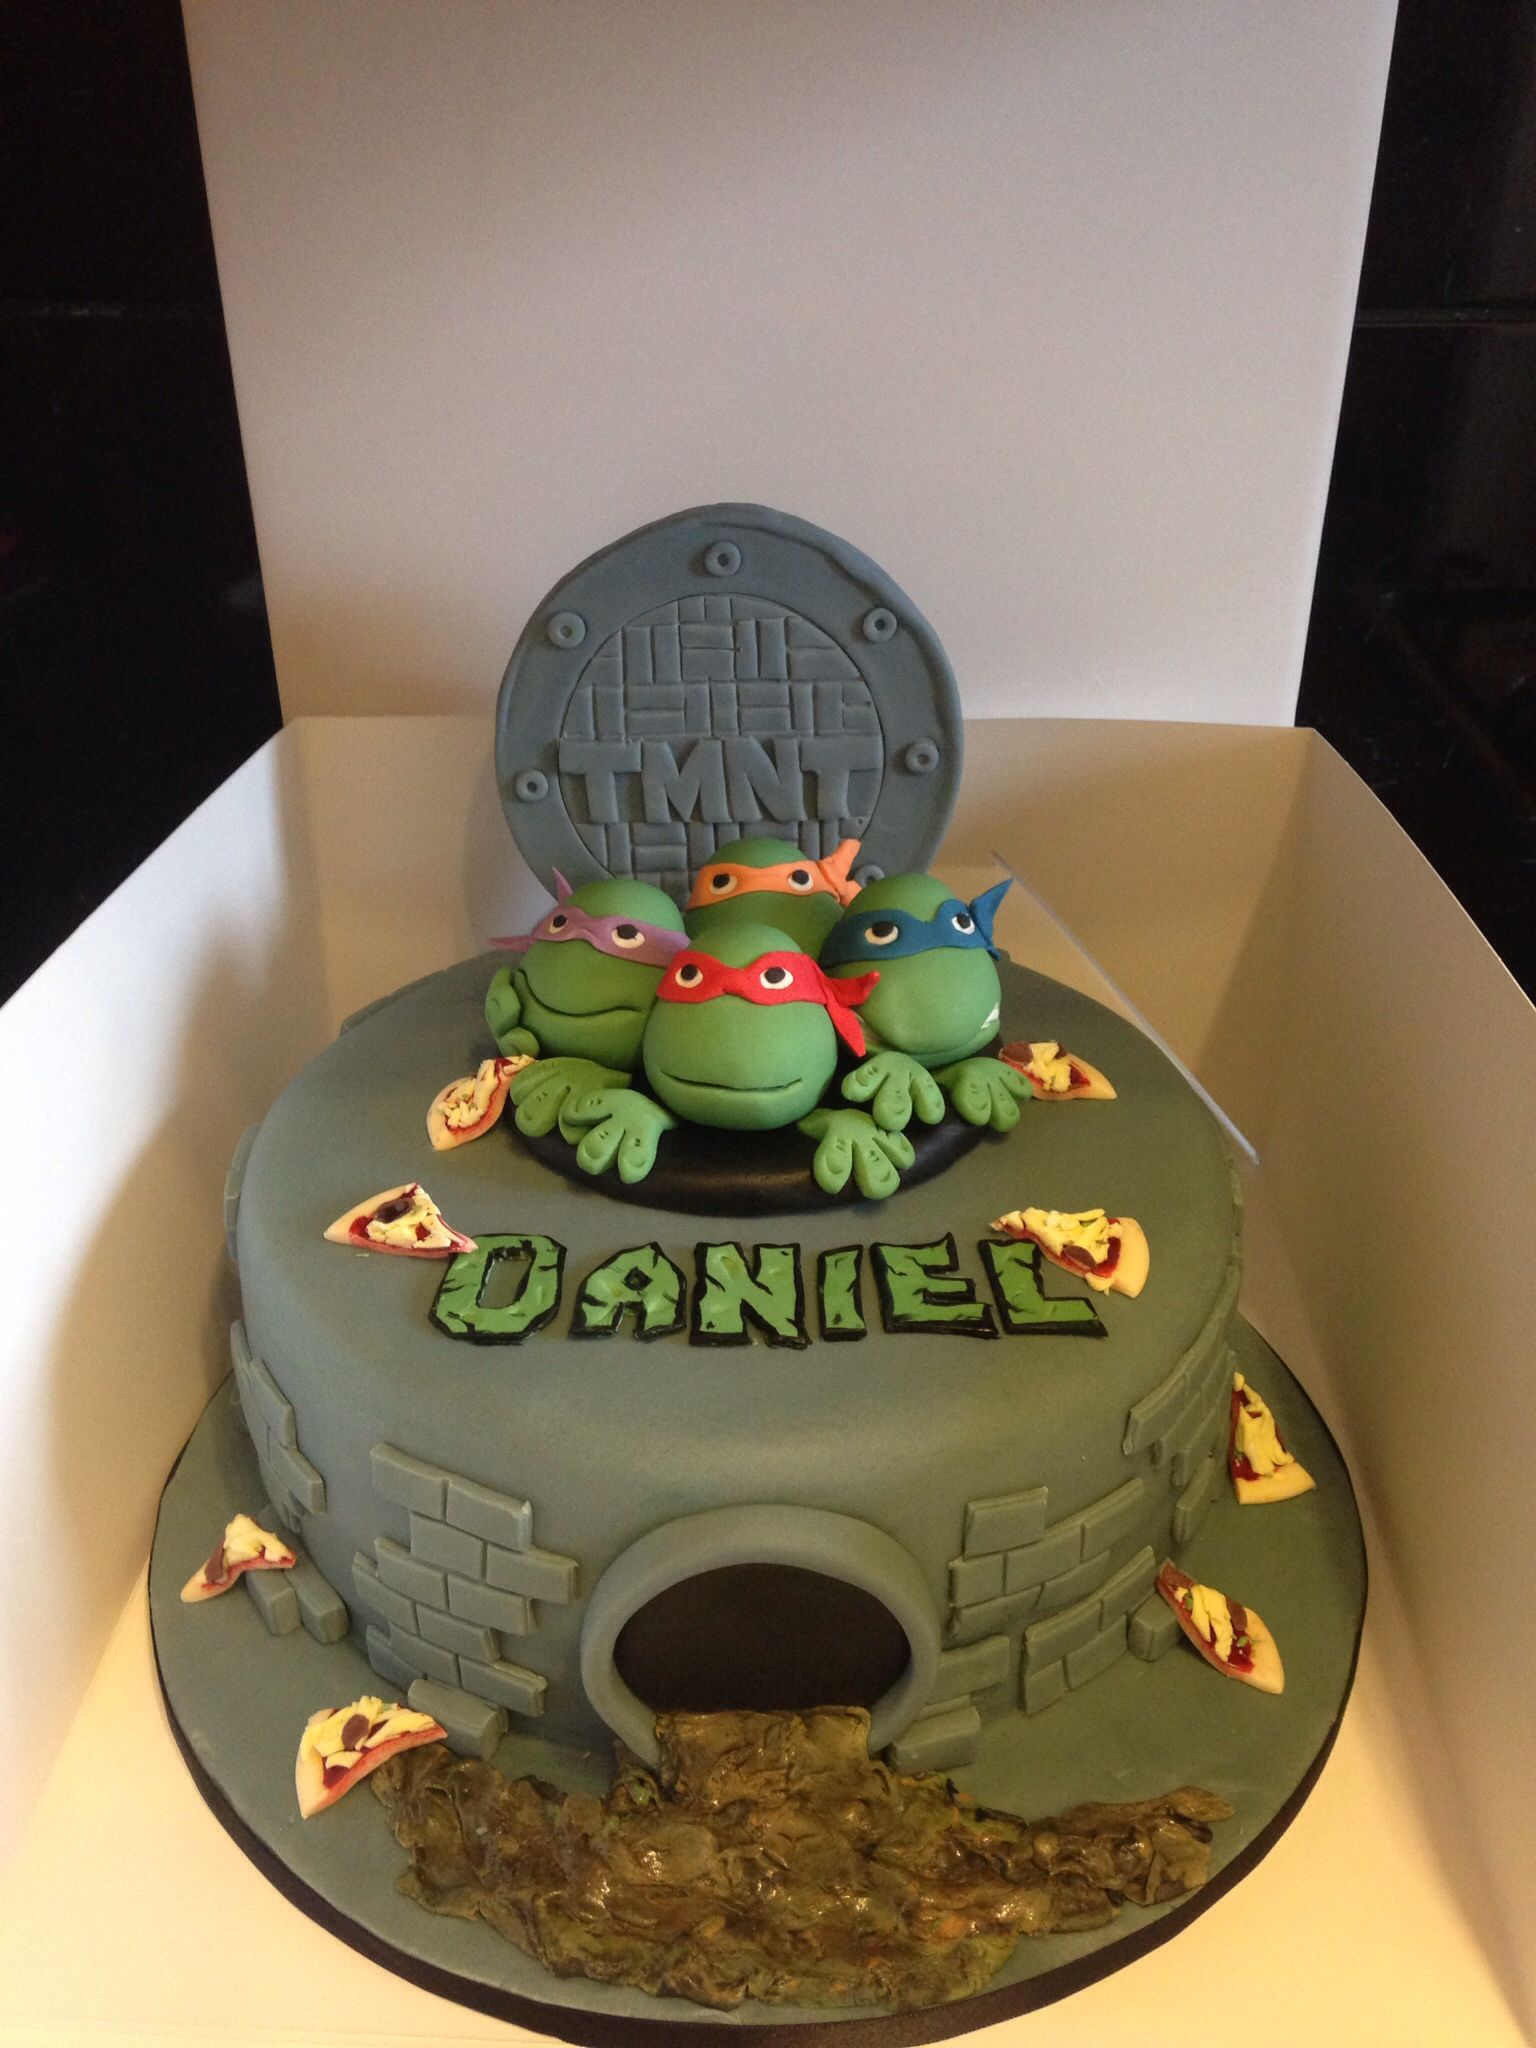 Teenage Mutant Ninja Turtles Tmnt Cake Coul Be Cute With Green